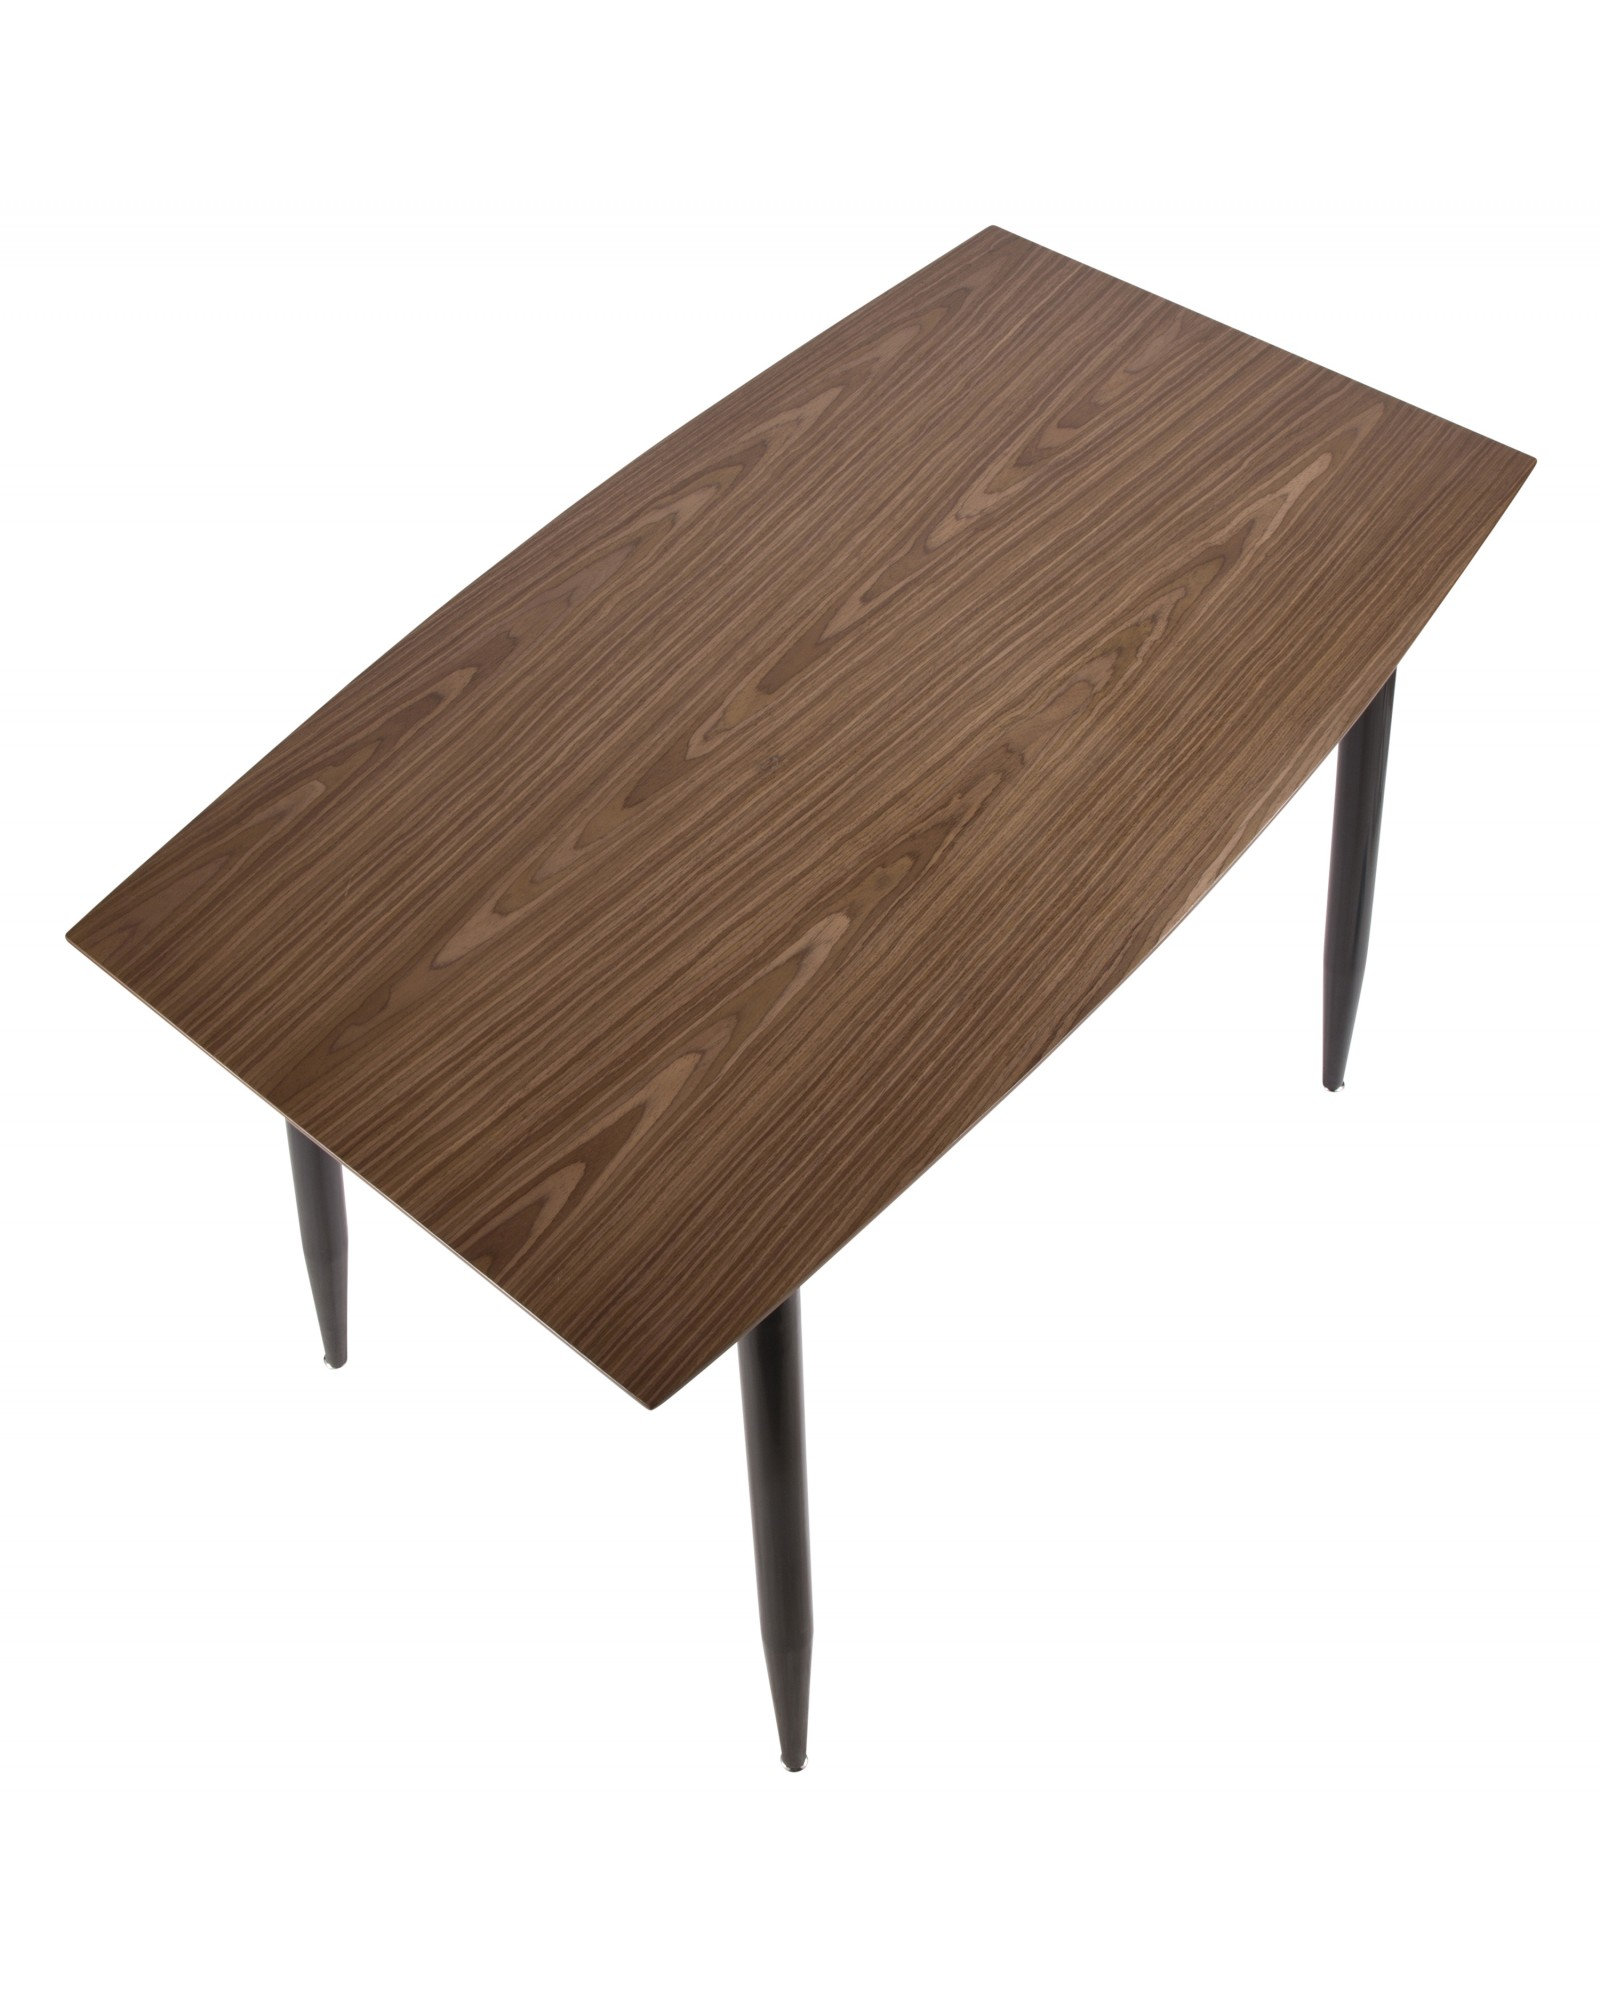 Clara Mid-Century Modern Counter Table with Black Metal Legs and Walnut Wood Top